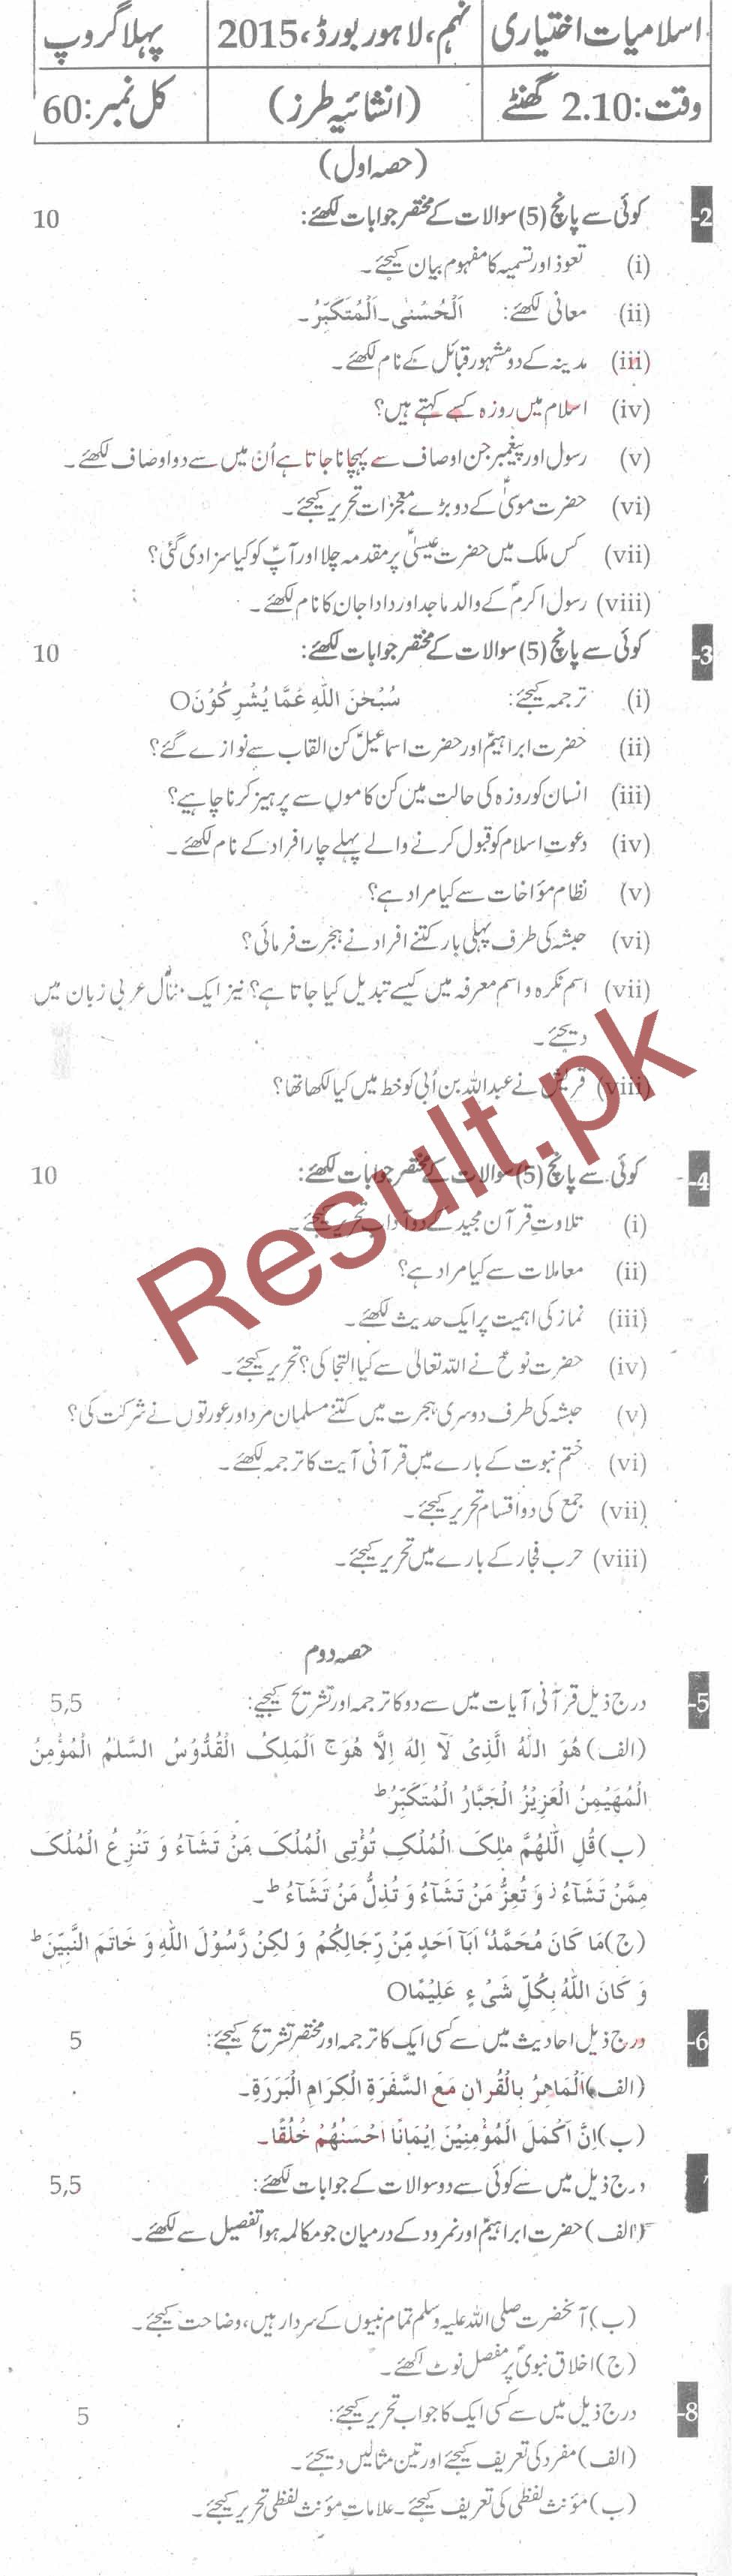 BISE Multan Board Past Papers 2017 Matric, SSC Part 1 & 2, 9th